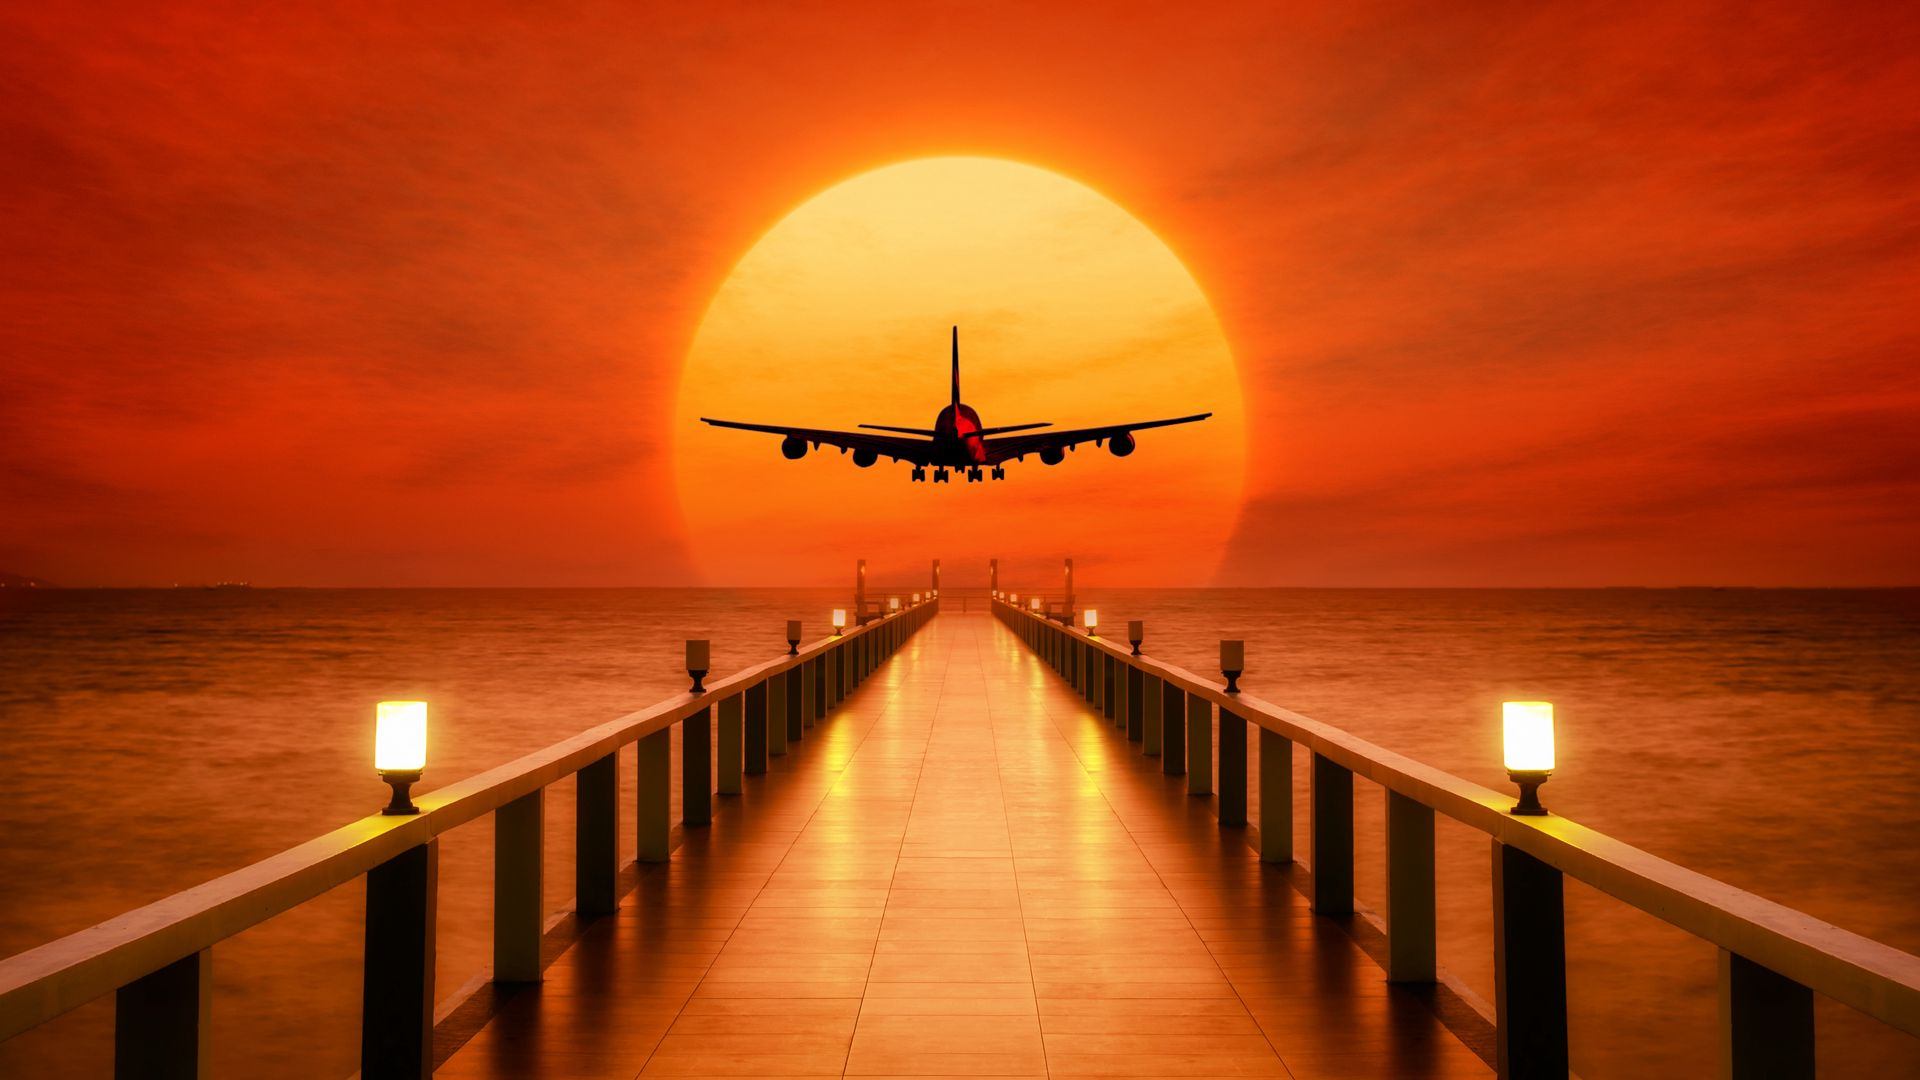 Airplane, Photoshop, Sunset, Wharf Wallpapers Free Download